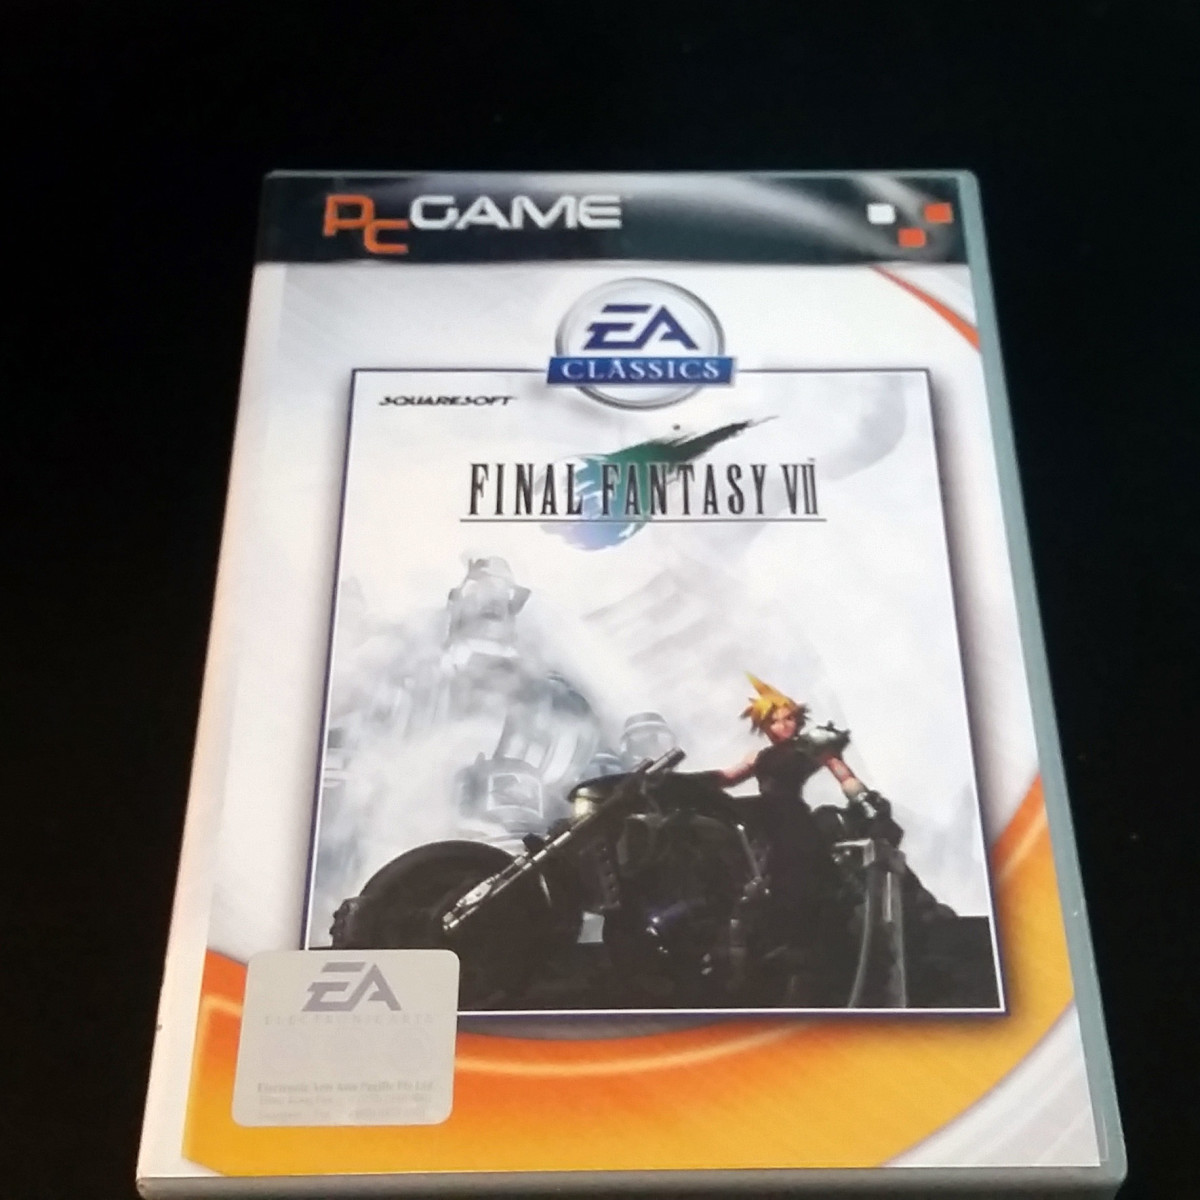 This old copy of Final Fantasy VII was once worth over $90.  It's worth less today, however, it could still bring in some decent money.